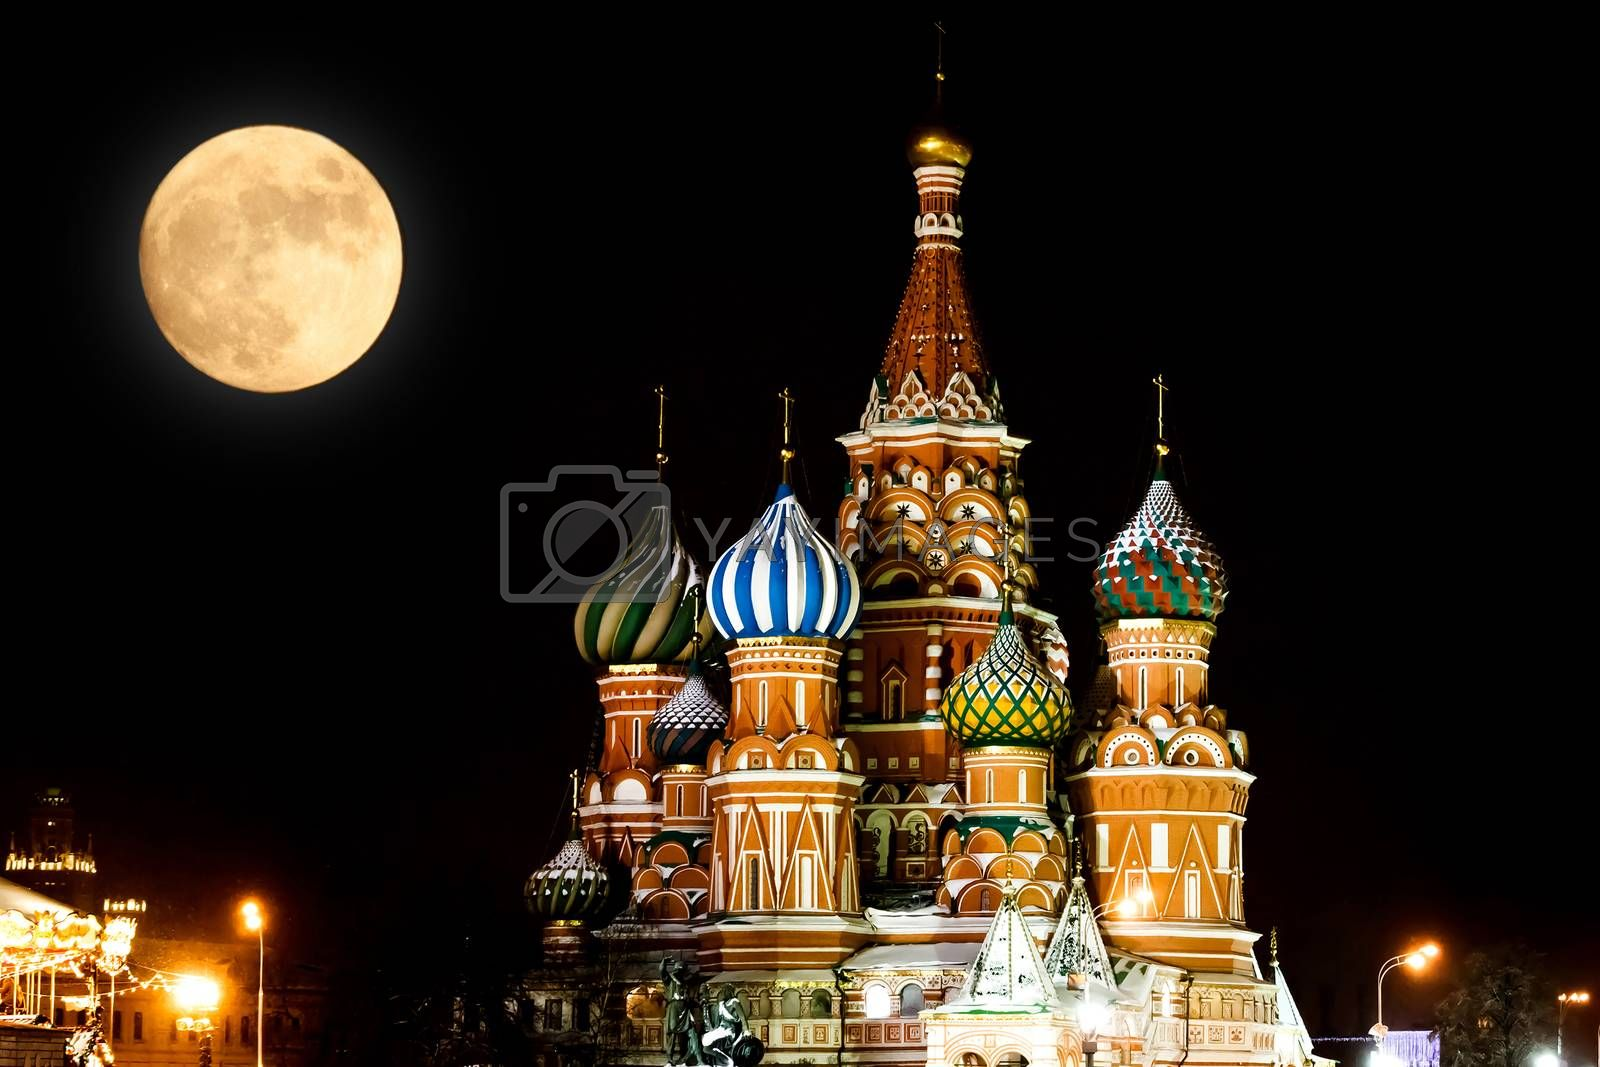 St Basils Cathedral at night and full Moon. Winter season. Moscow, Russia